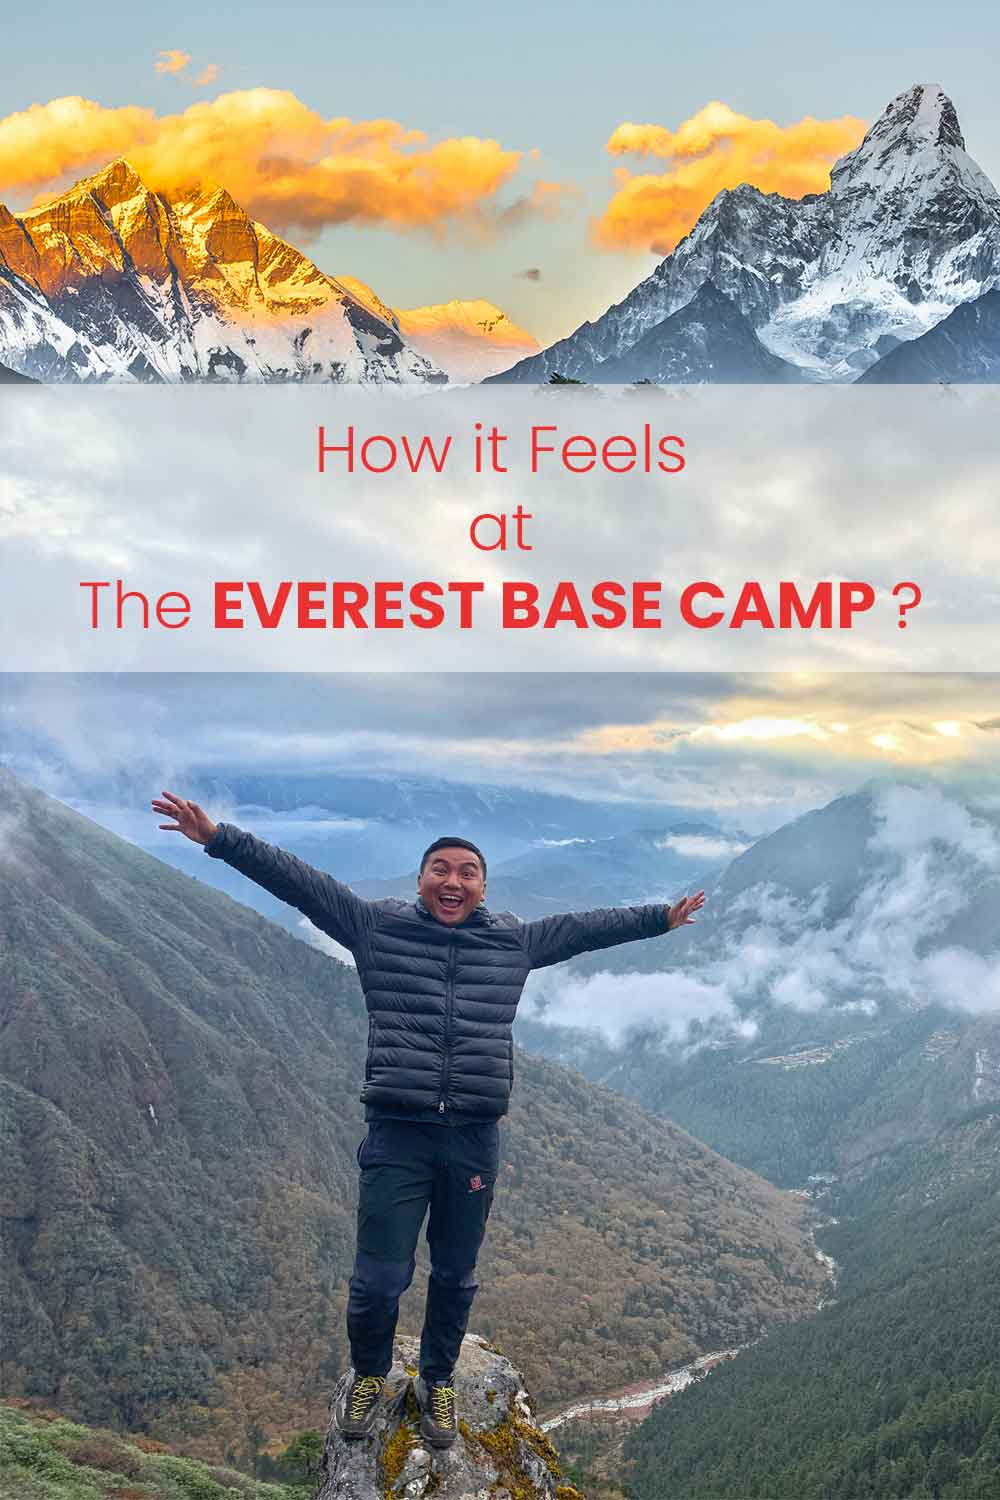 Everest Base Camp Trek - Imfreee